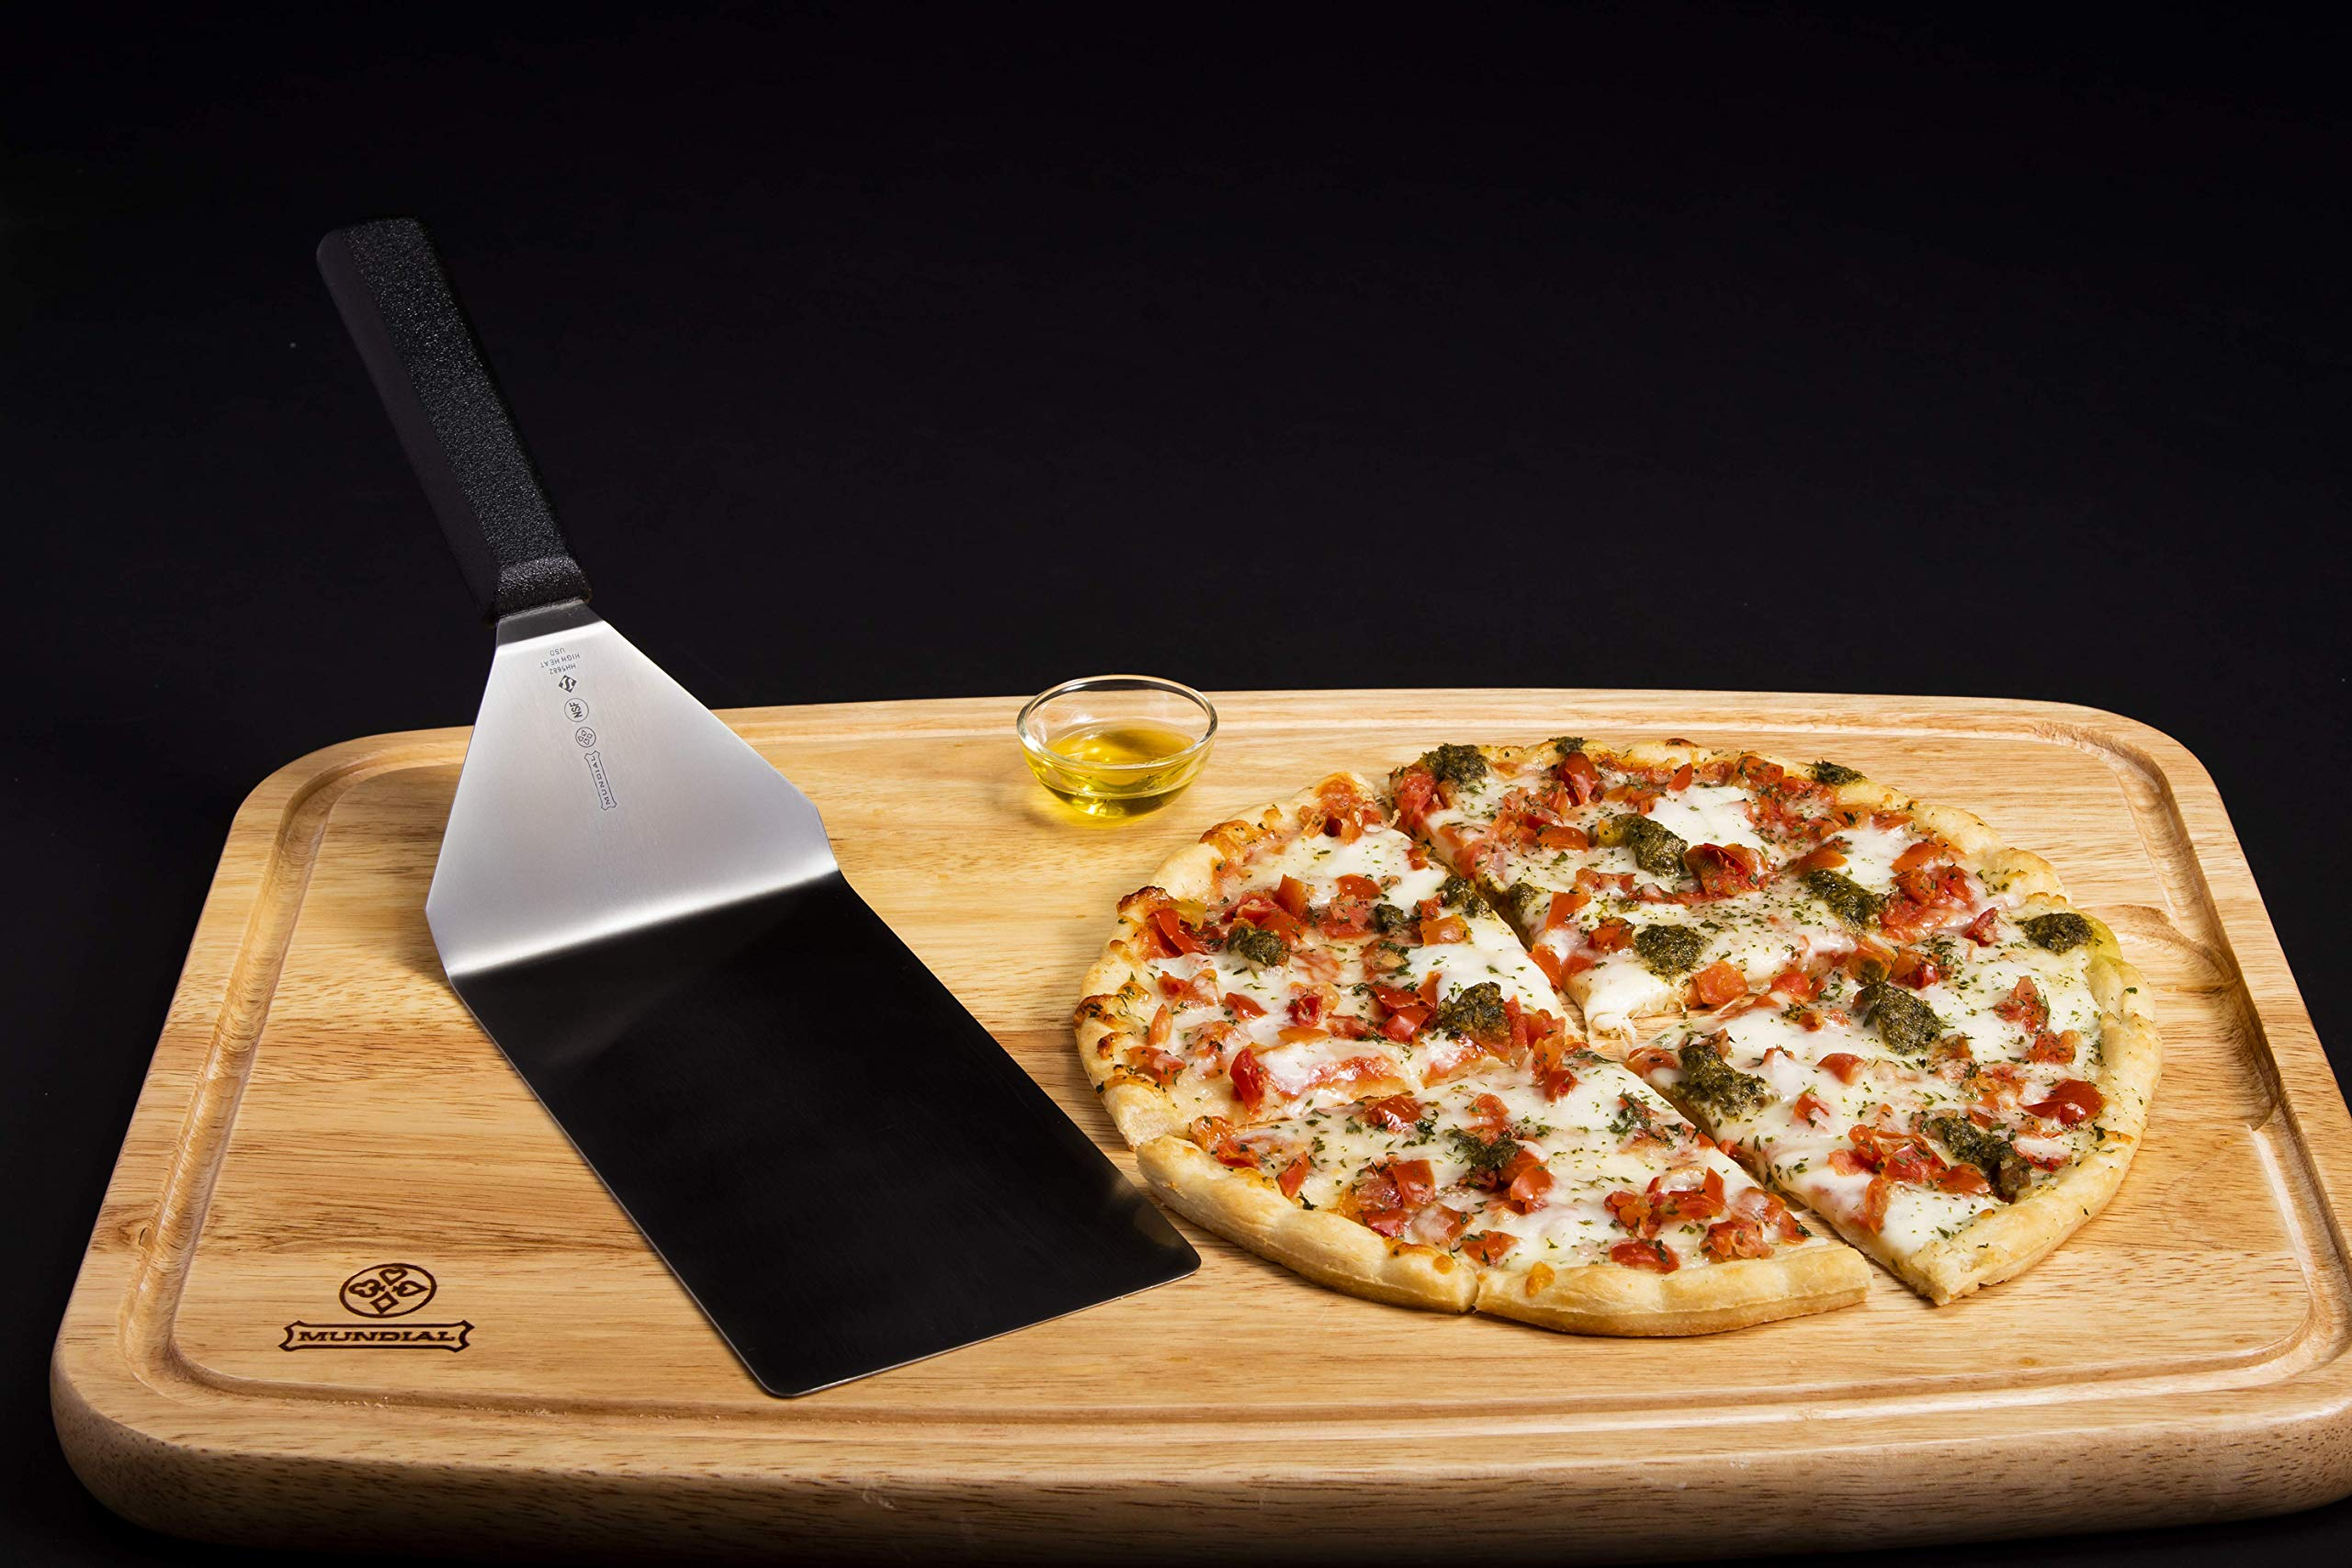 Mundial 5682HH High Heat Resistant Turner/Spatula 8-inch by 4-inch with Black Handle